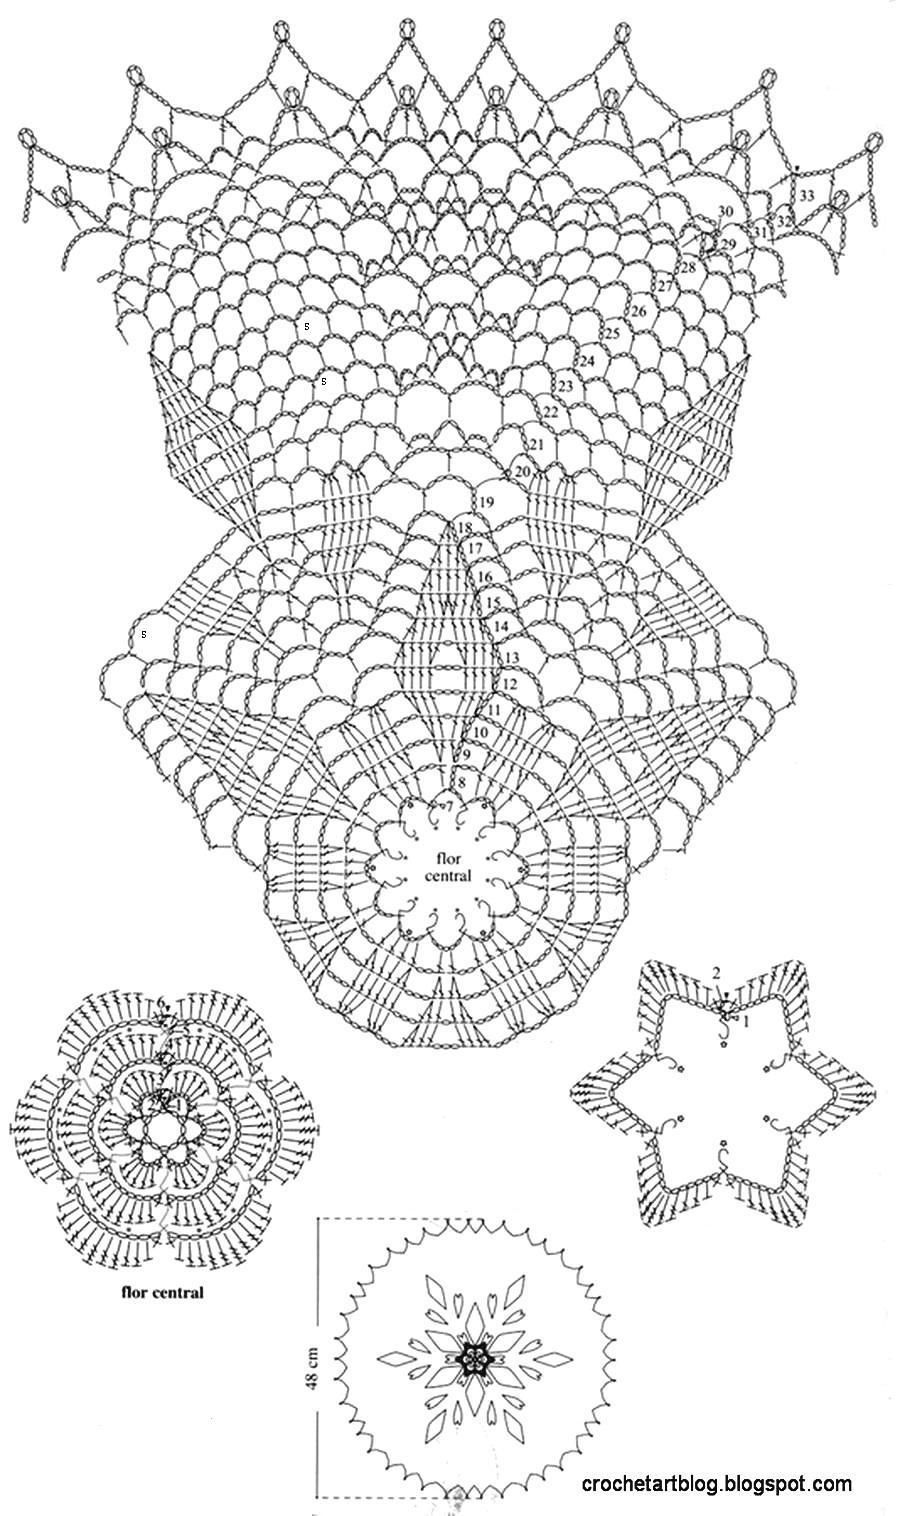 Crochet art crochet lace doilies crochet flower free pattern crochet art crochet lace doilies crochet flower free pattern bankloansurffo Image collections